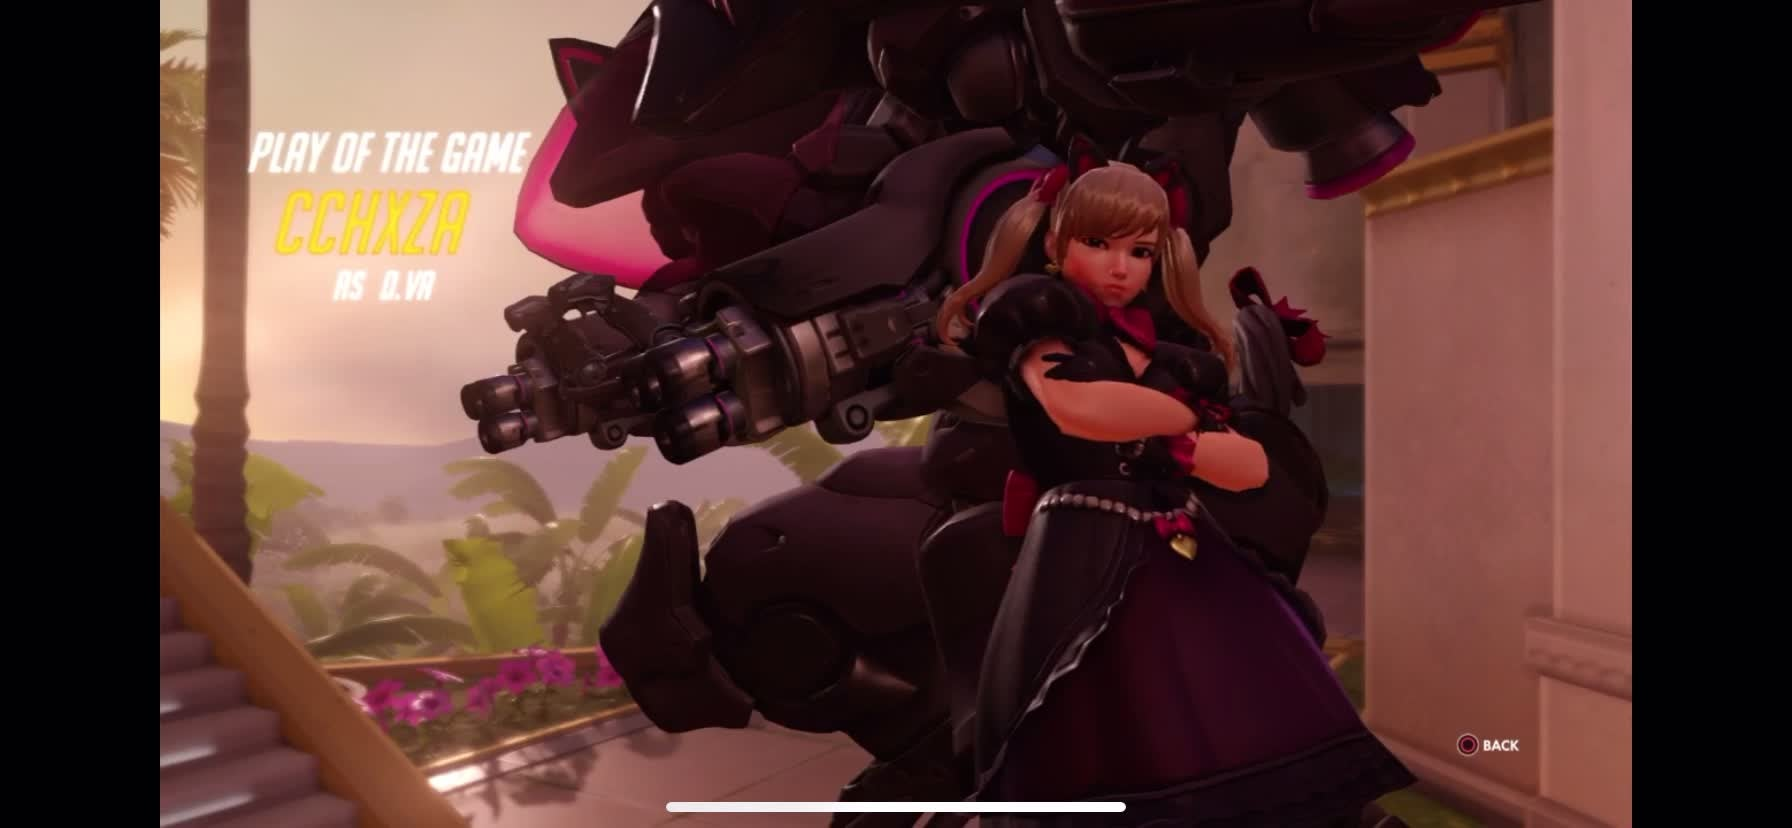 Overwatch: General - My triangle button got stuck but still got that Quintuple kill 😬 video cover image 0